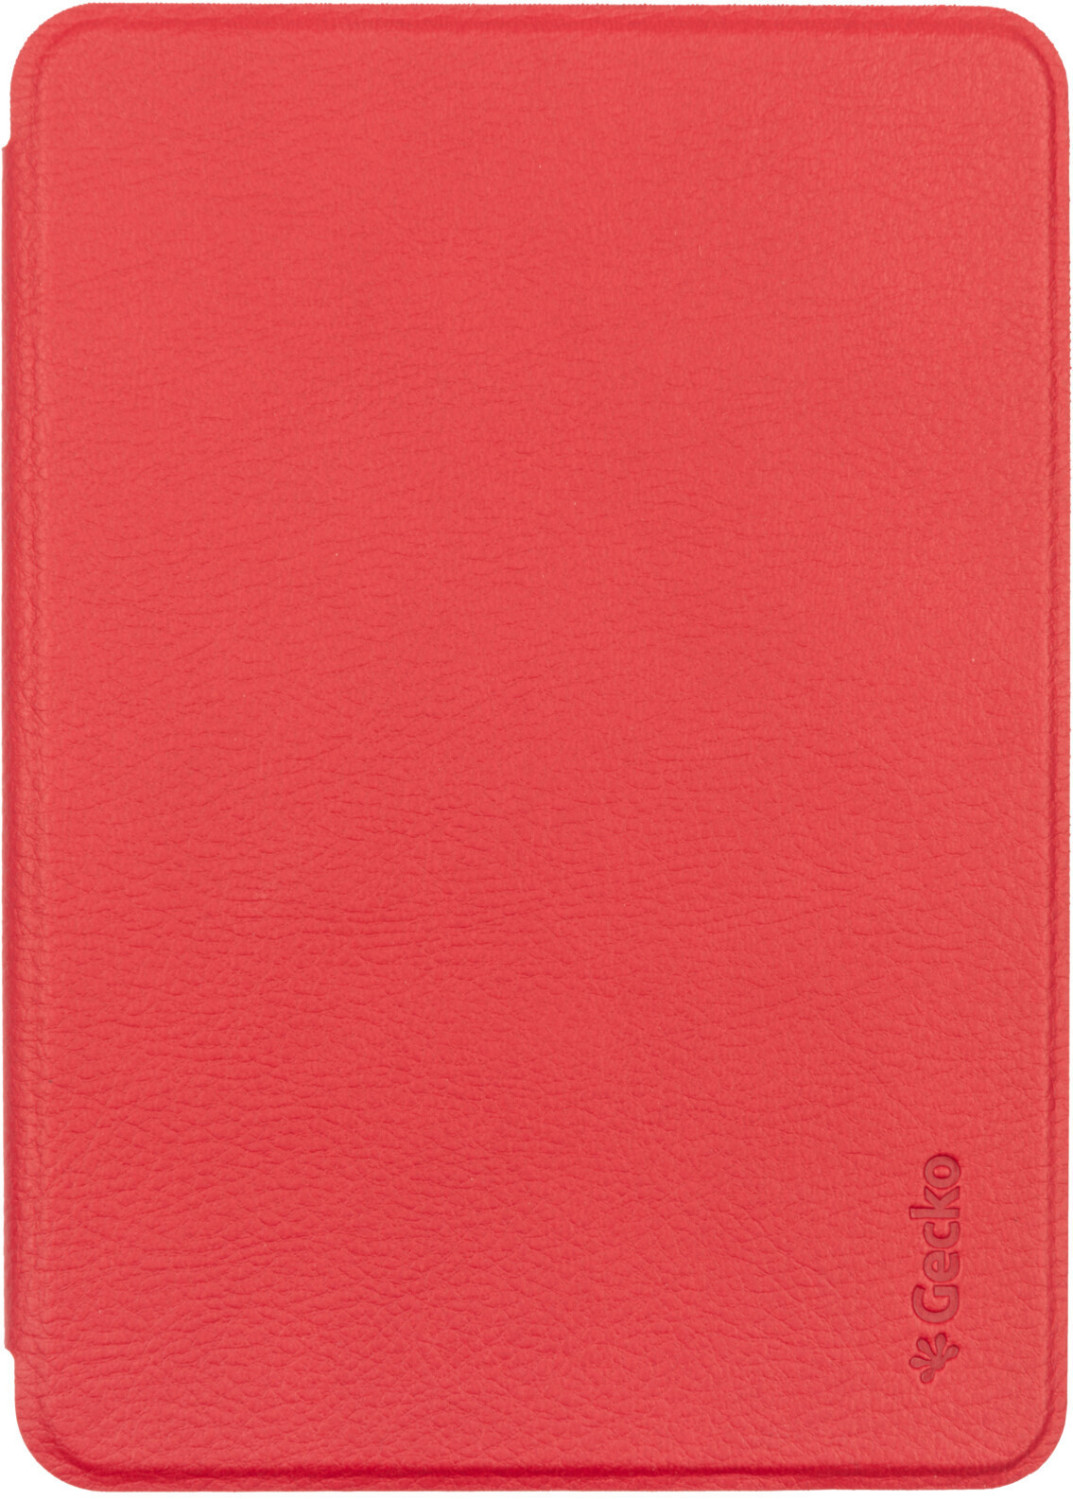 Image of Gecko Covers Slimfit Cover Kindle 2019 red